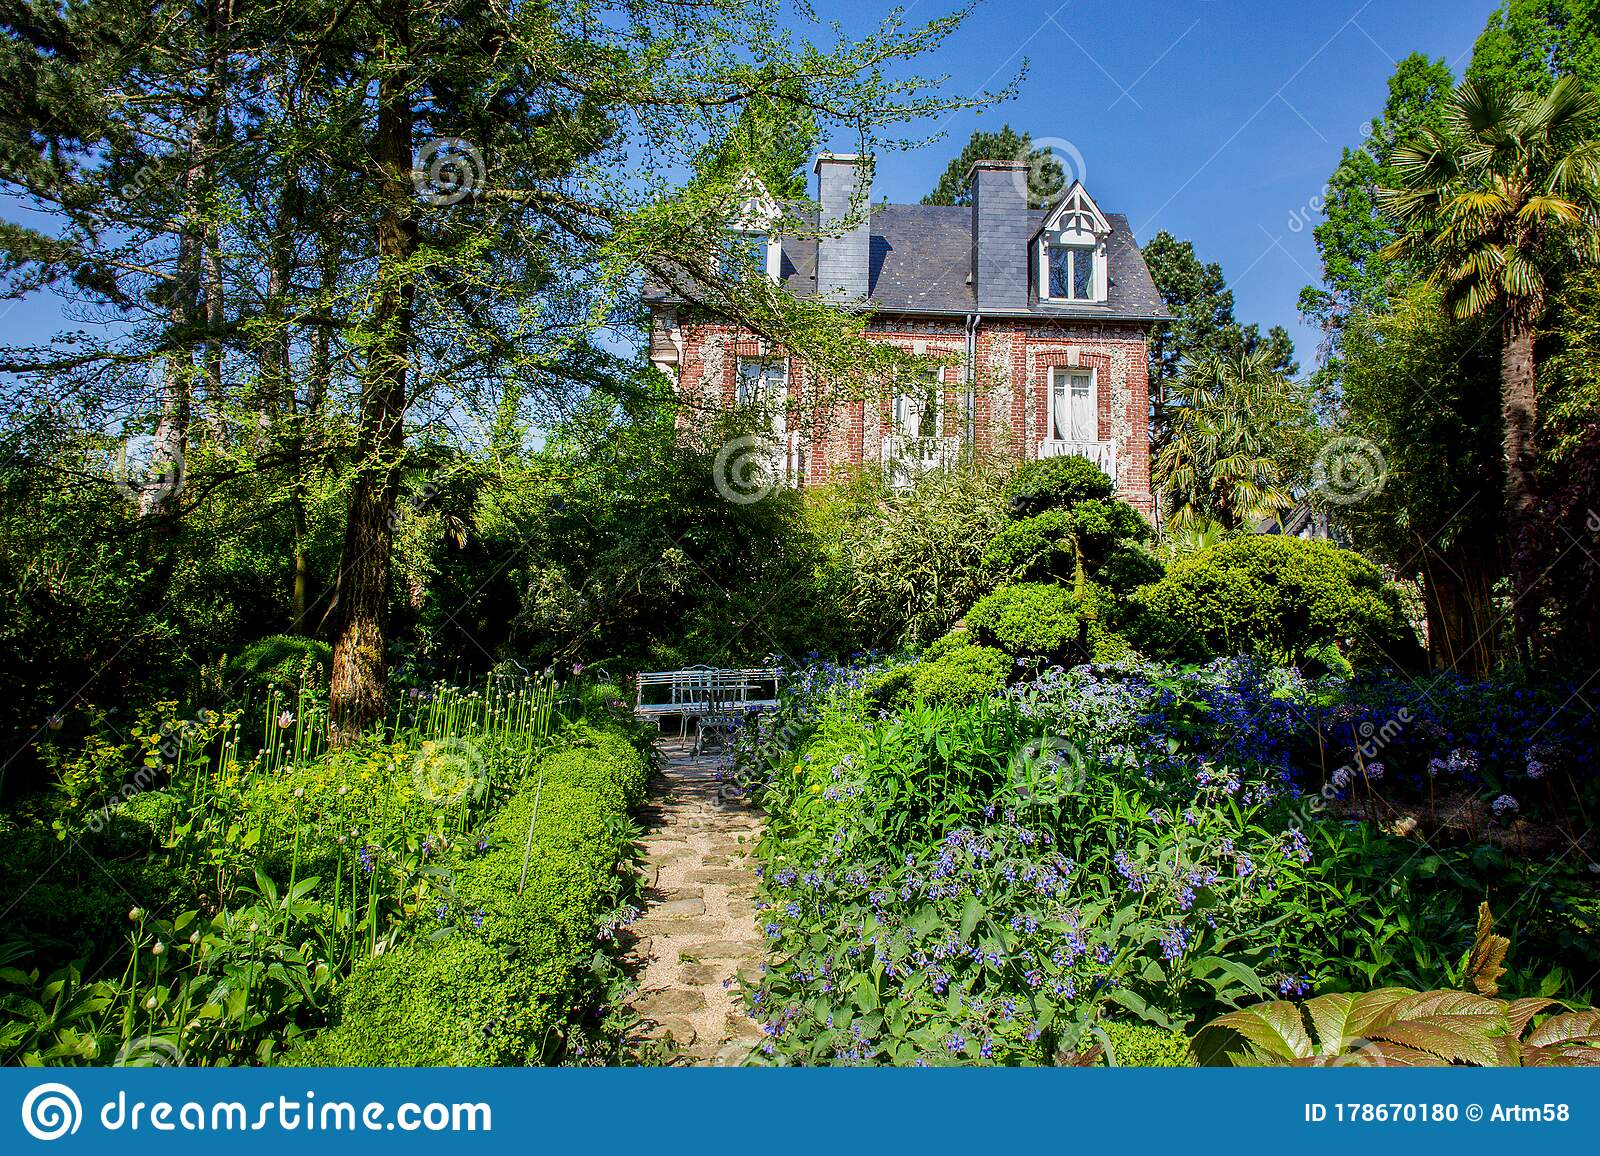 Garden Agapanthe In Normandy Country House And Gardennear It Editorial Image Image Of Scene Fantstic 178670180